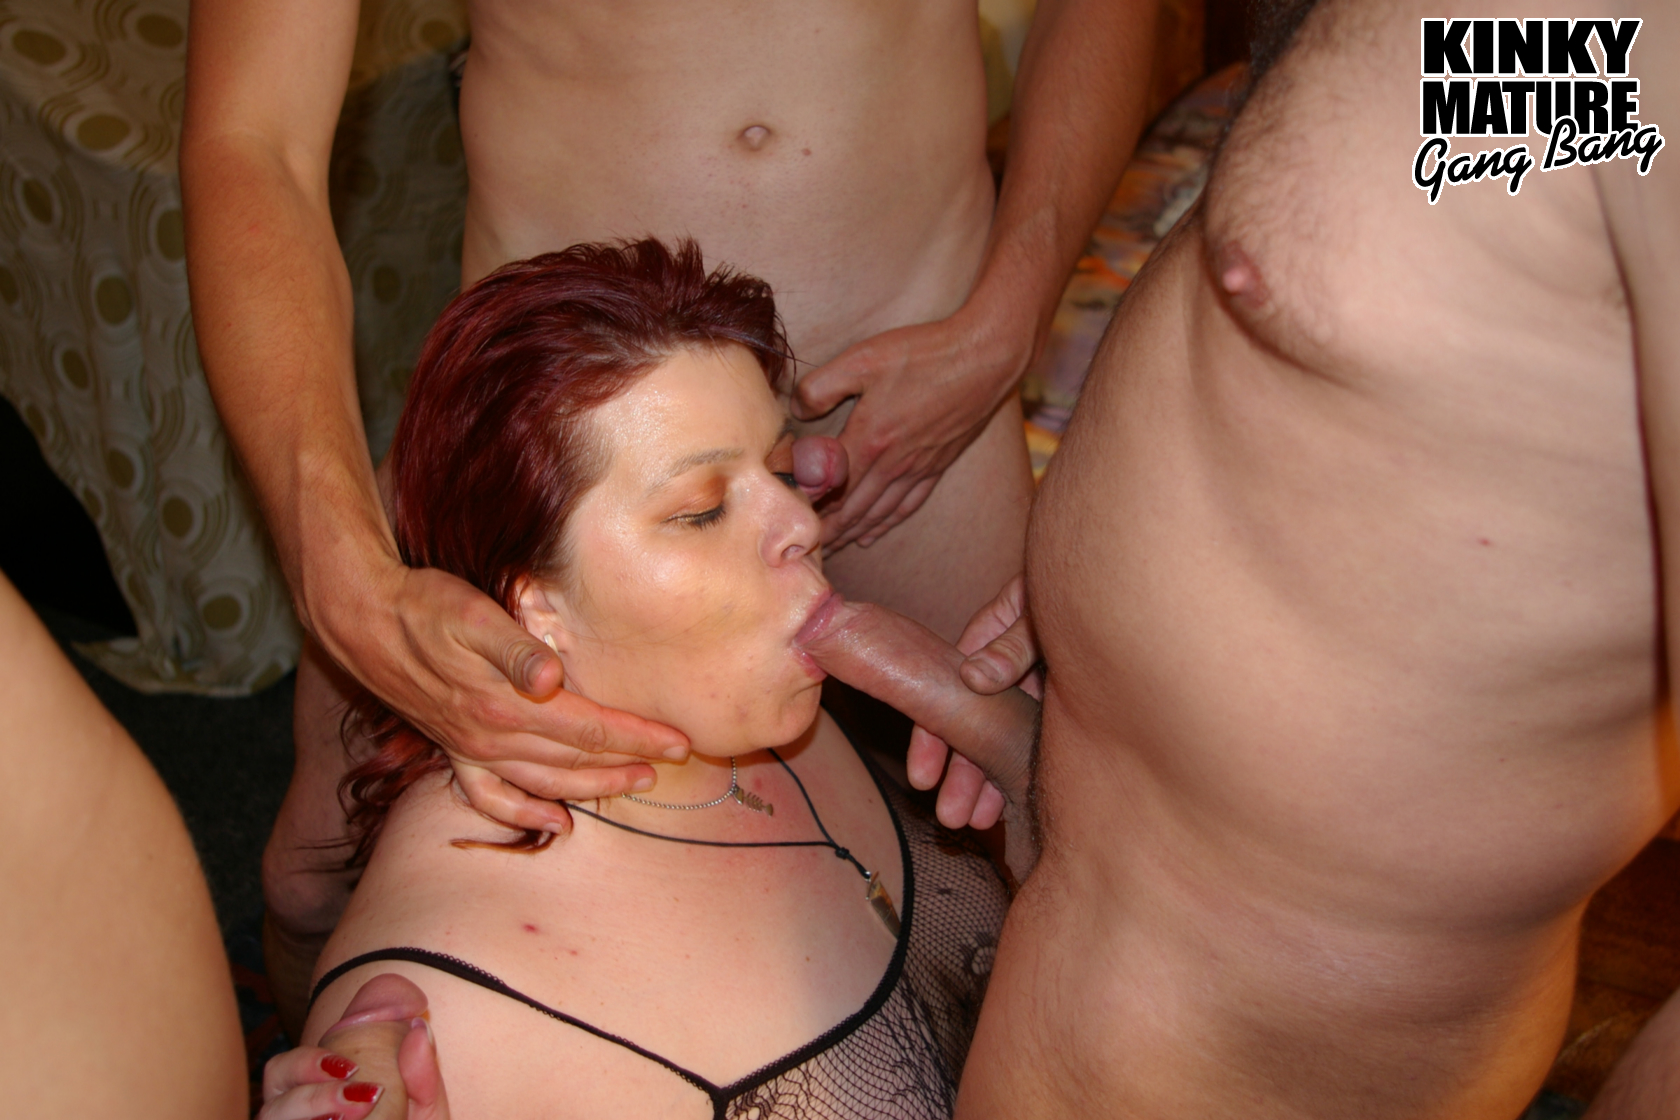 A gang bang for a blond girl with big tits 4